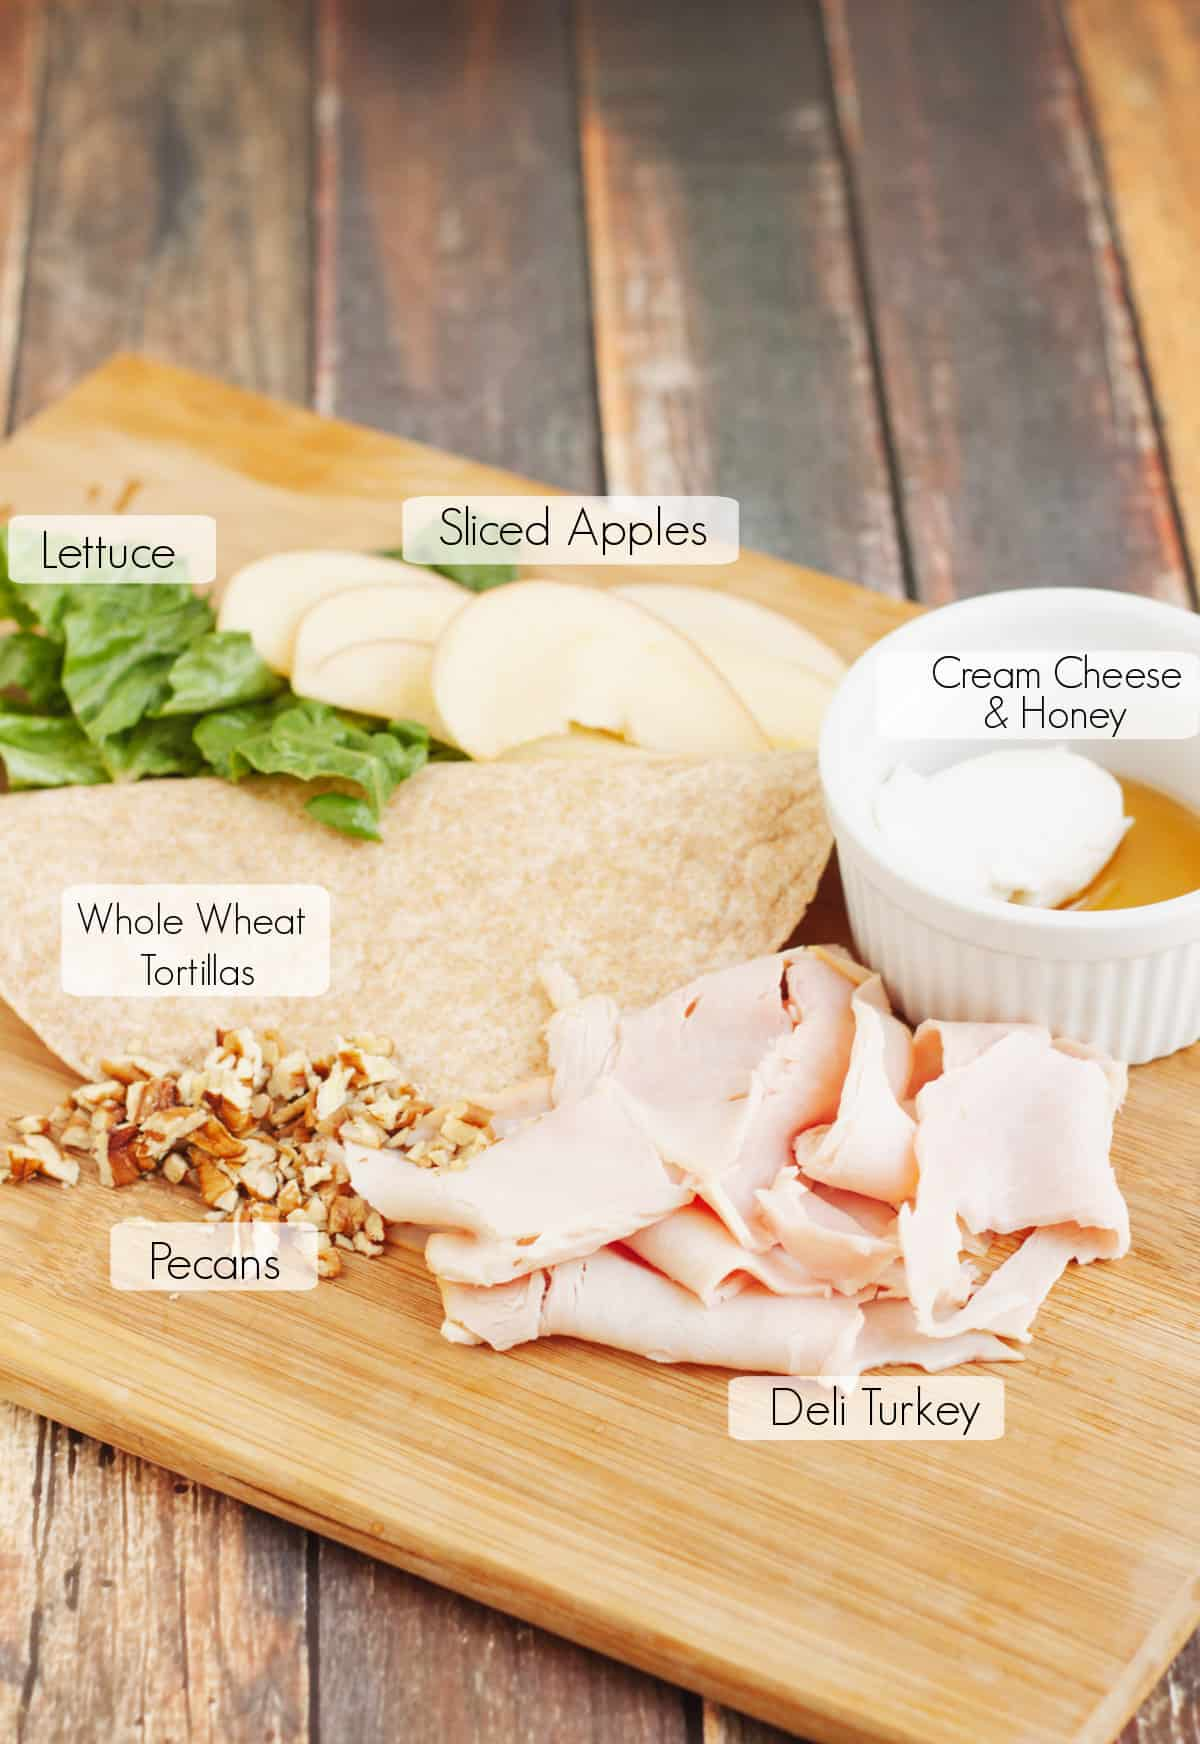 Labeled ingredients on wooden cutting board to make a turkey wrap sandwich.